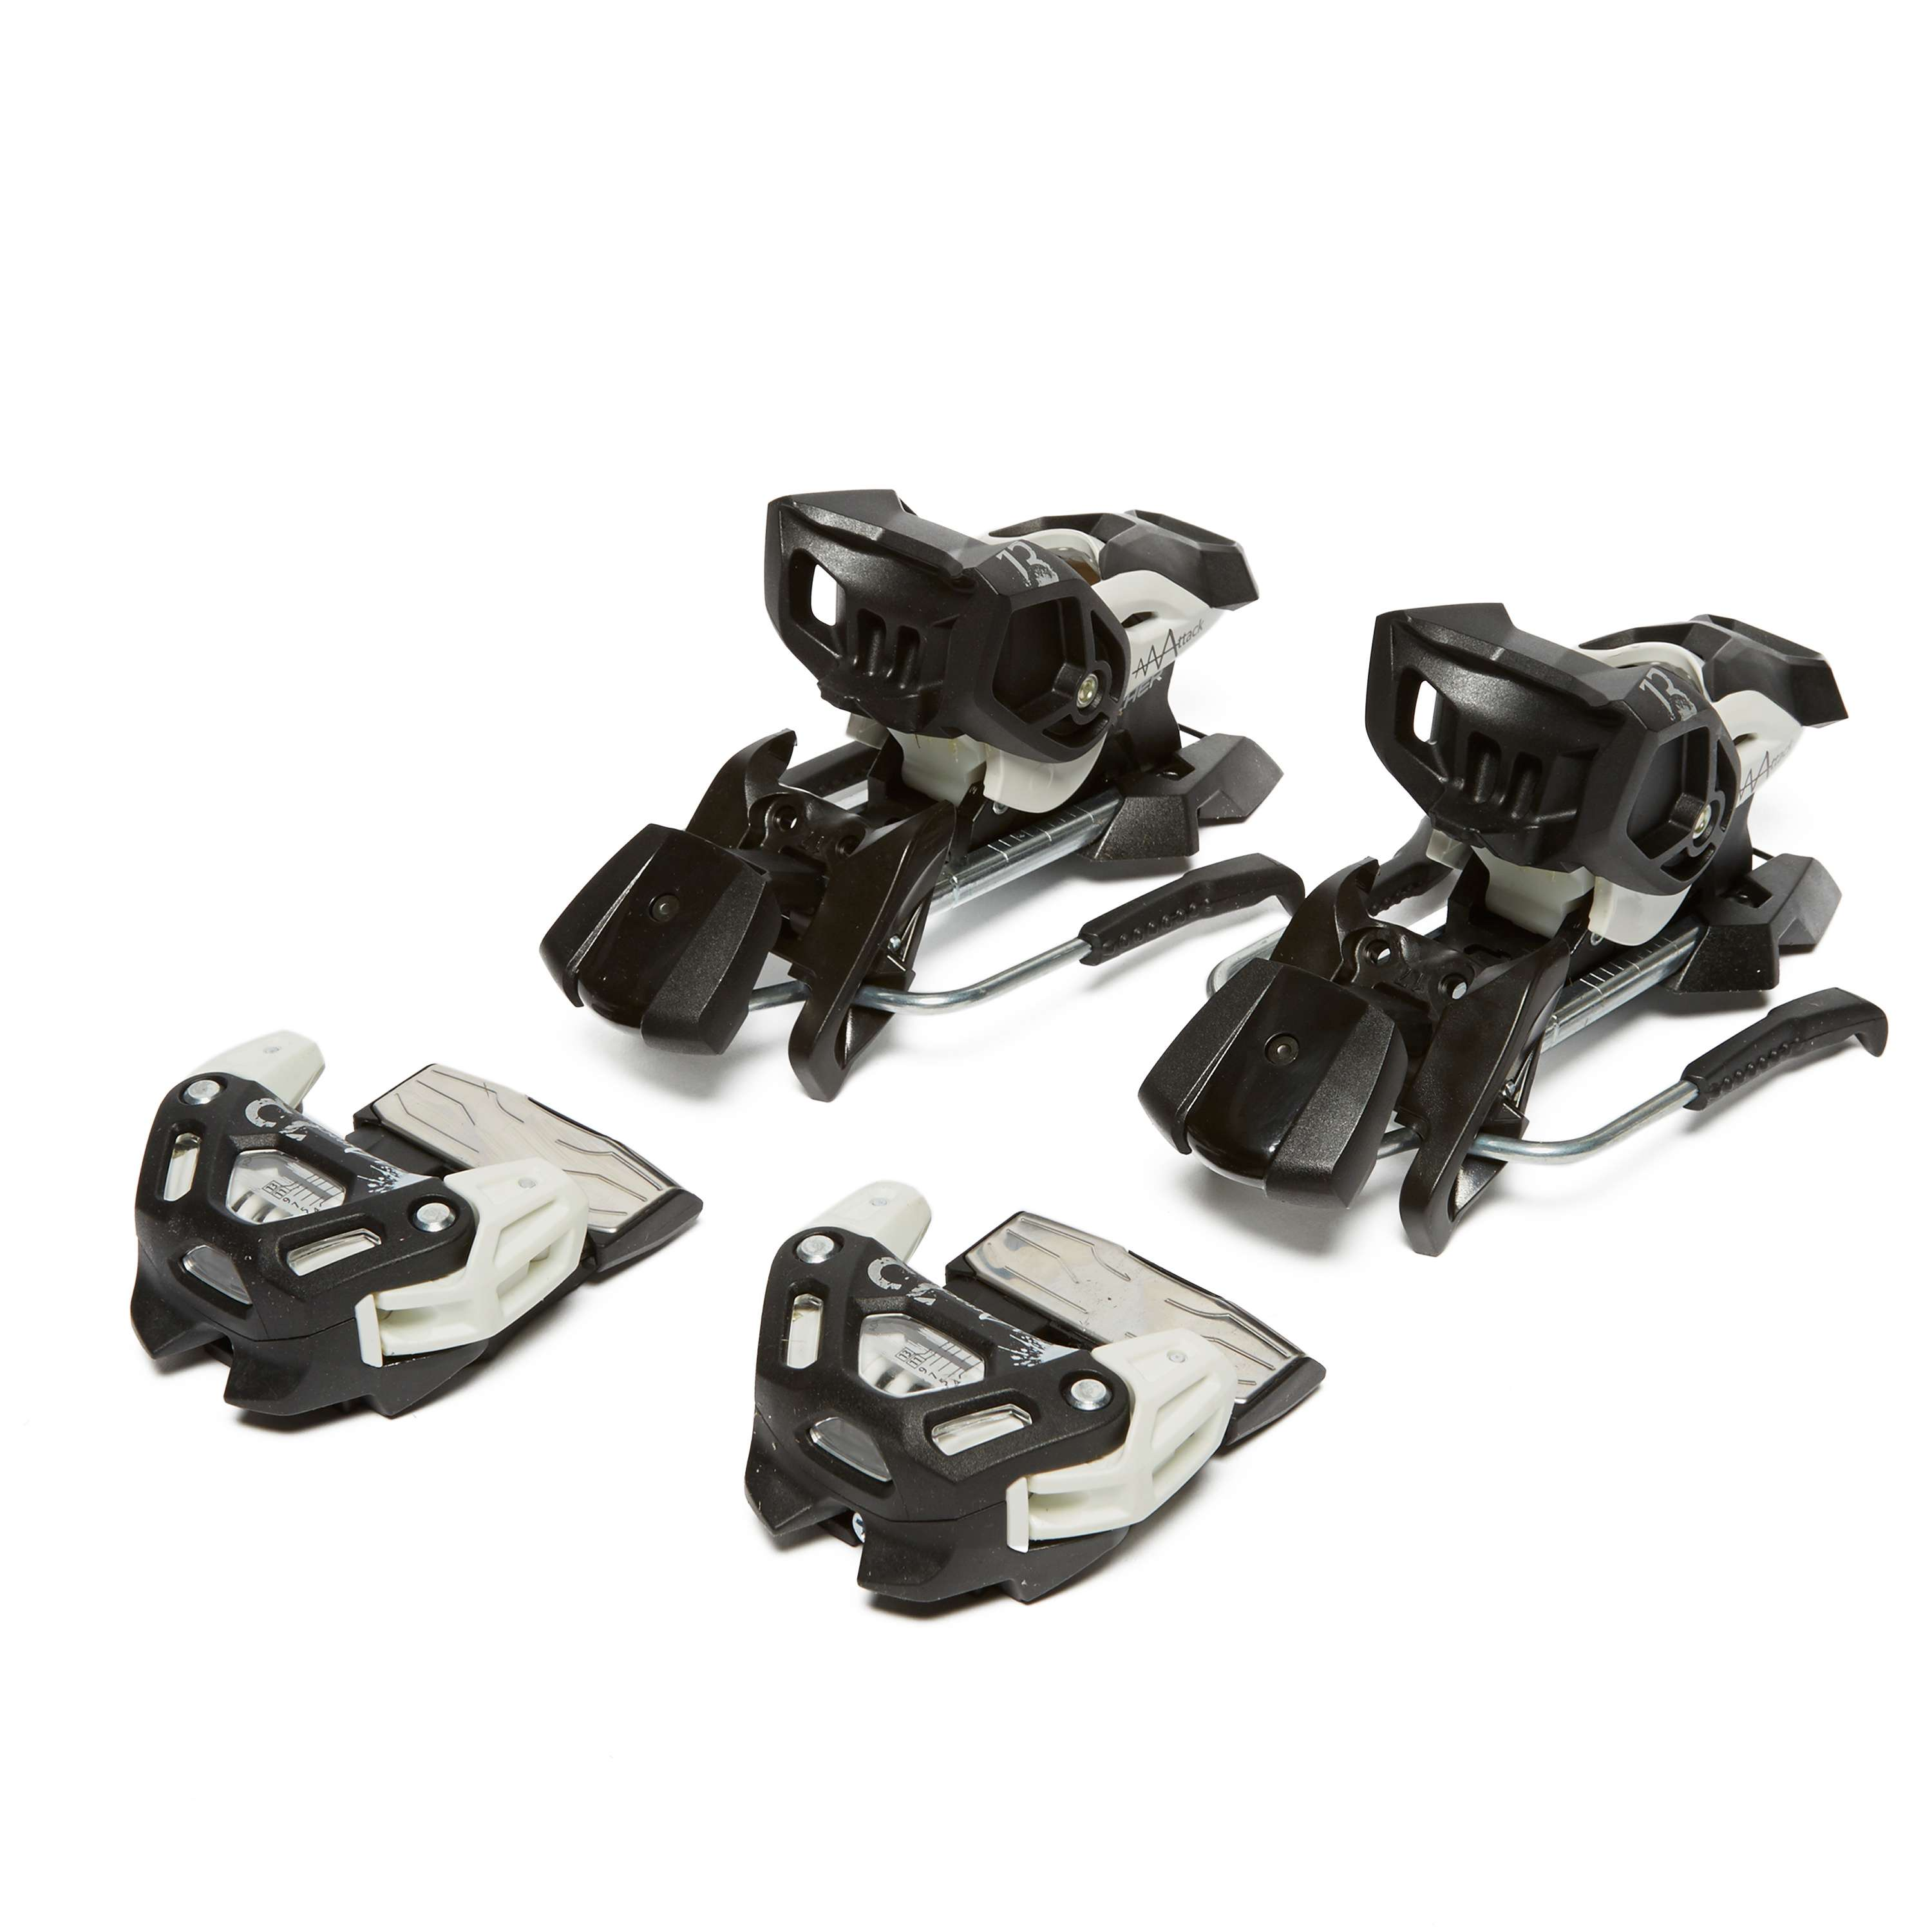 FISCHER SPORTS X11 & Attack 13 Bindings Brake Pro - 97mm